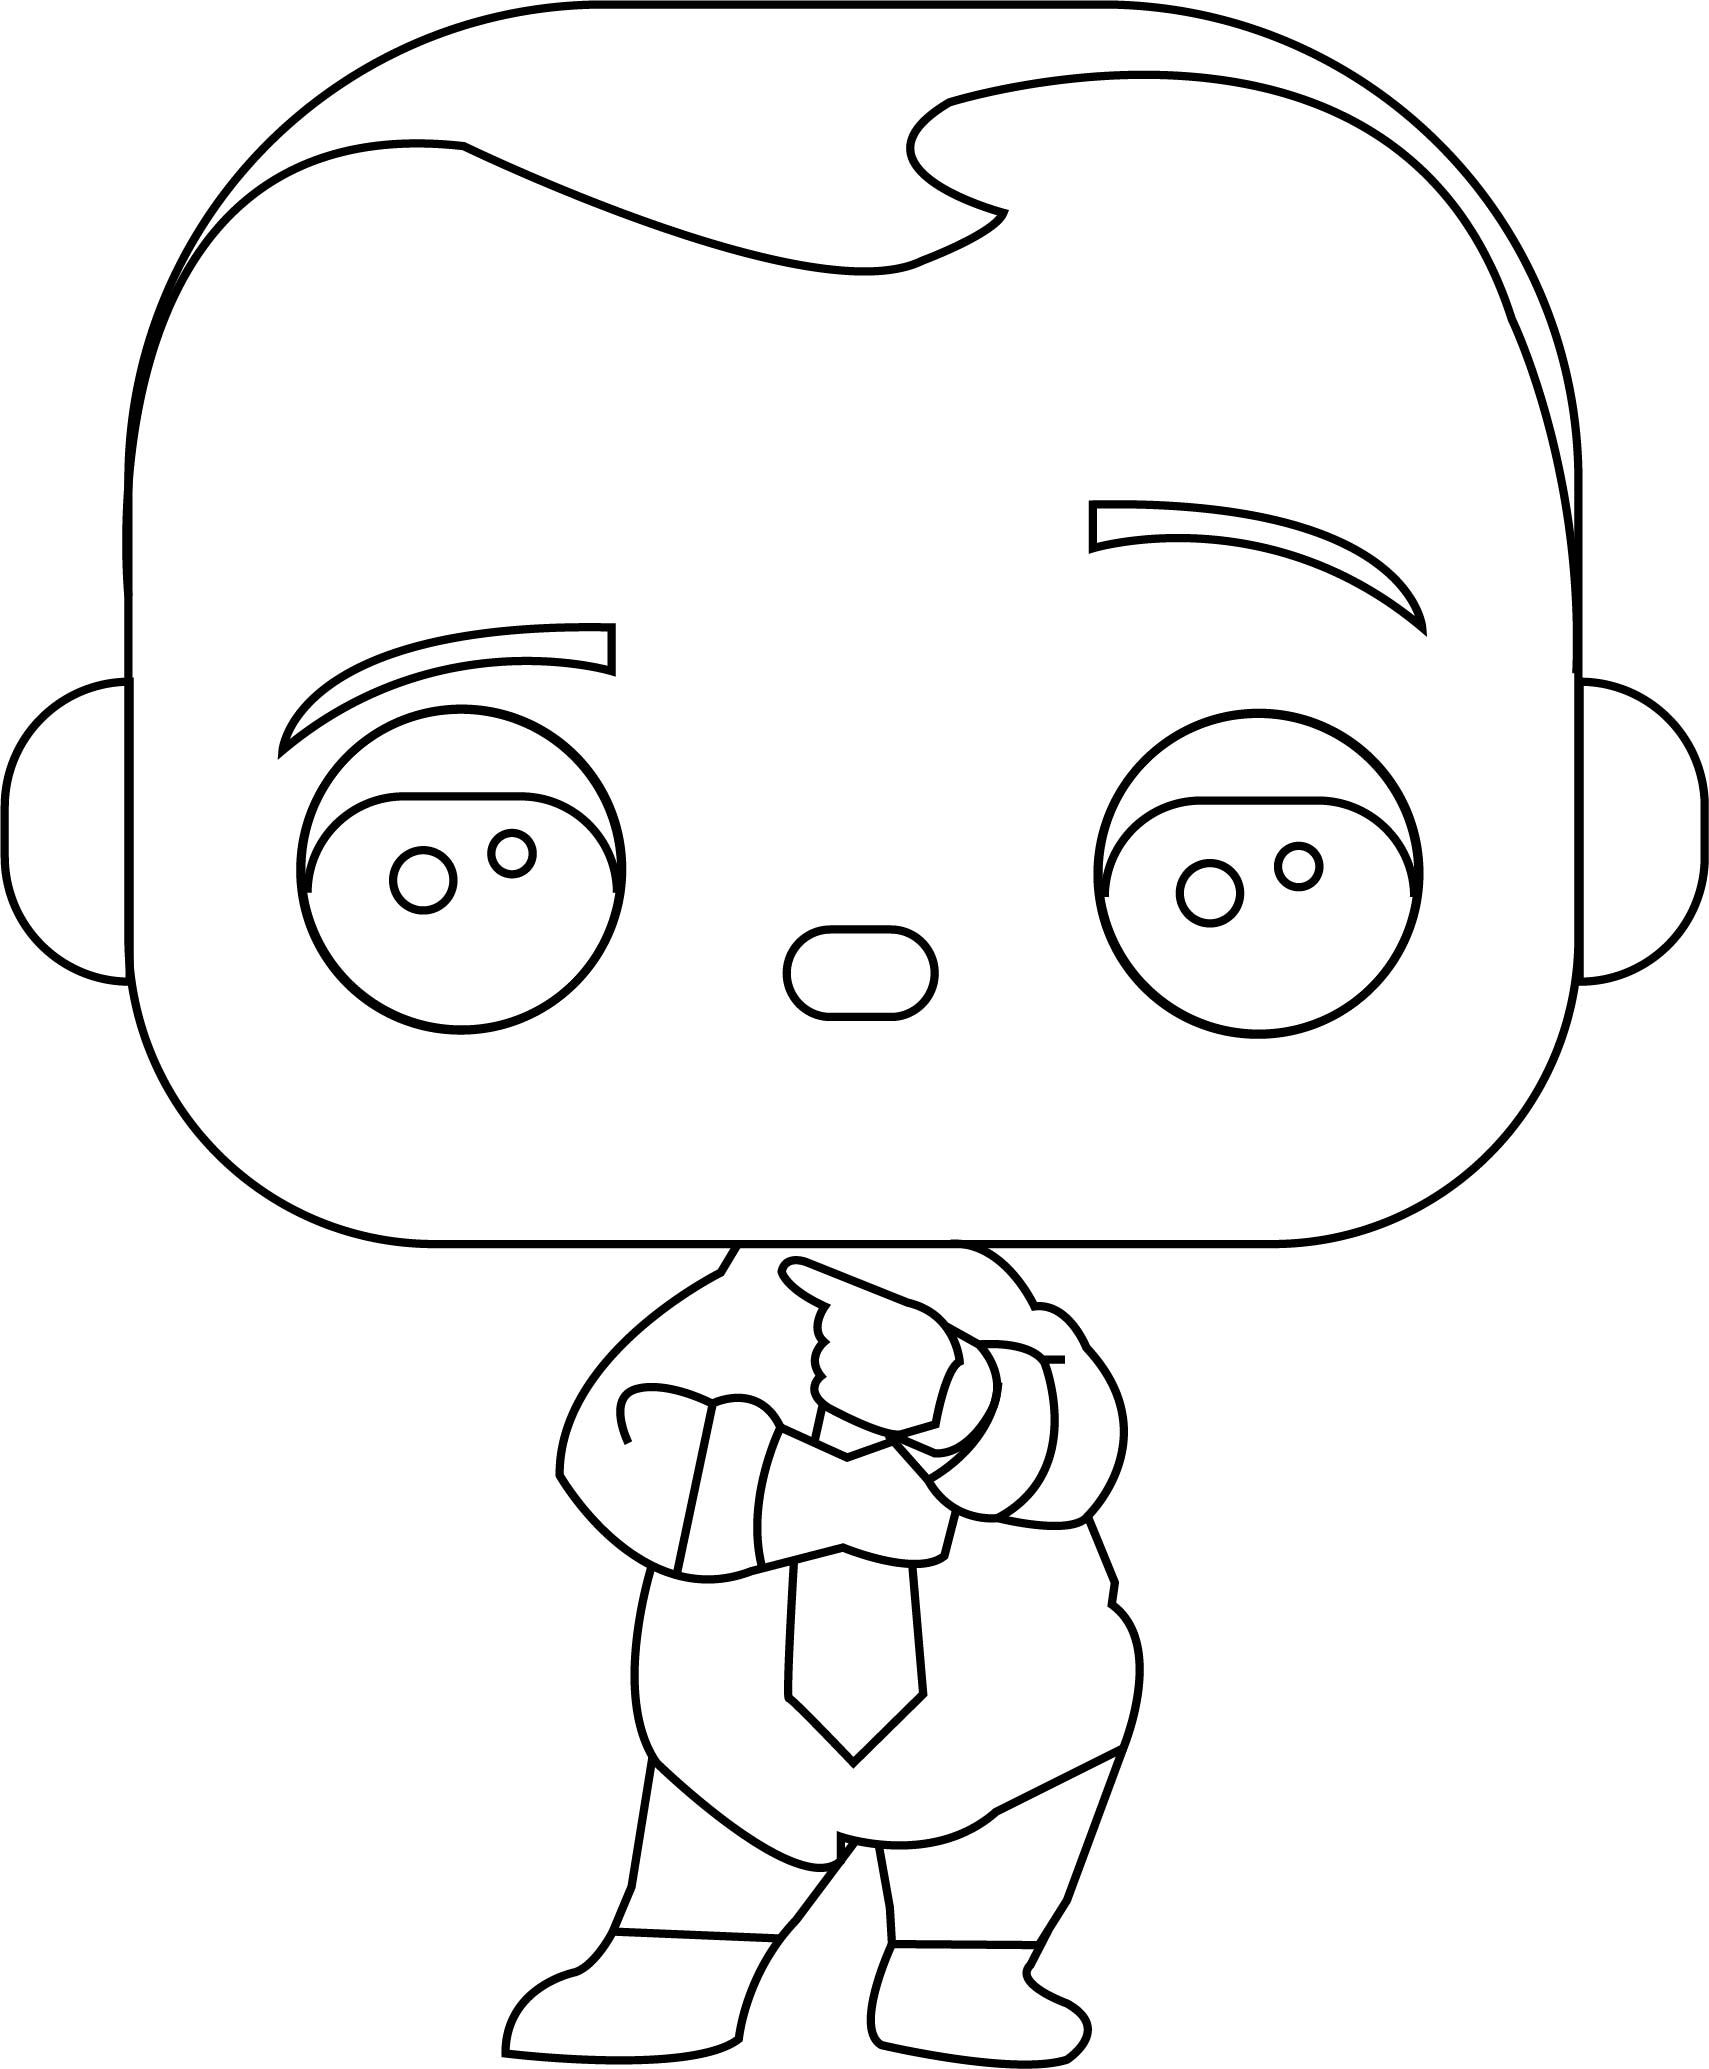 Funko Pop Boss Baby Boss Baby Diaper and Tie Coloring Page ...